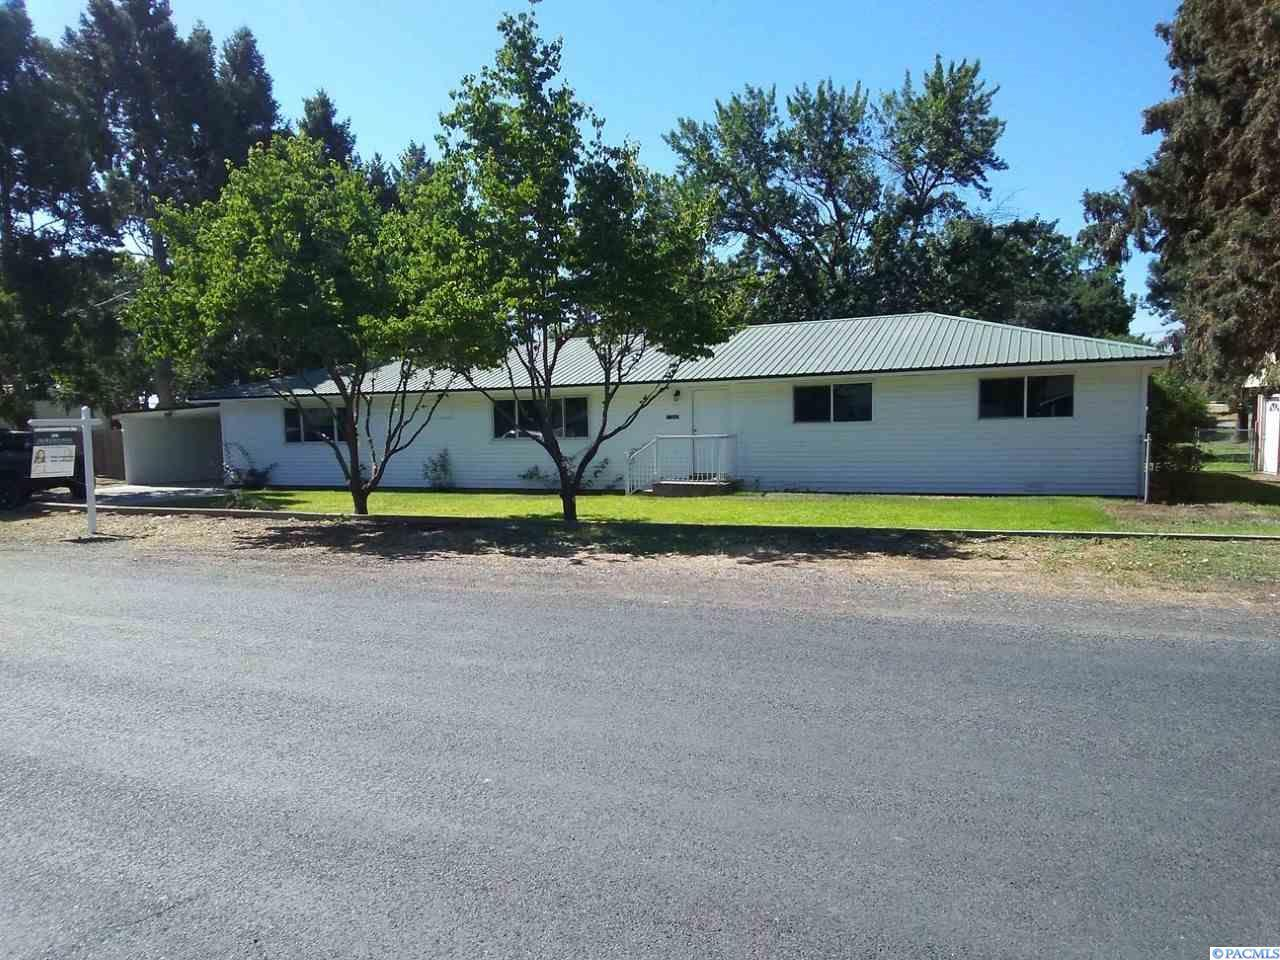 Garage Builders Tri Cities Wa 215303 E 22nd Ave Kennewick Wa Mls 237311 Tri City Real